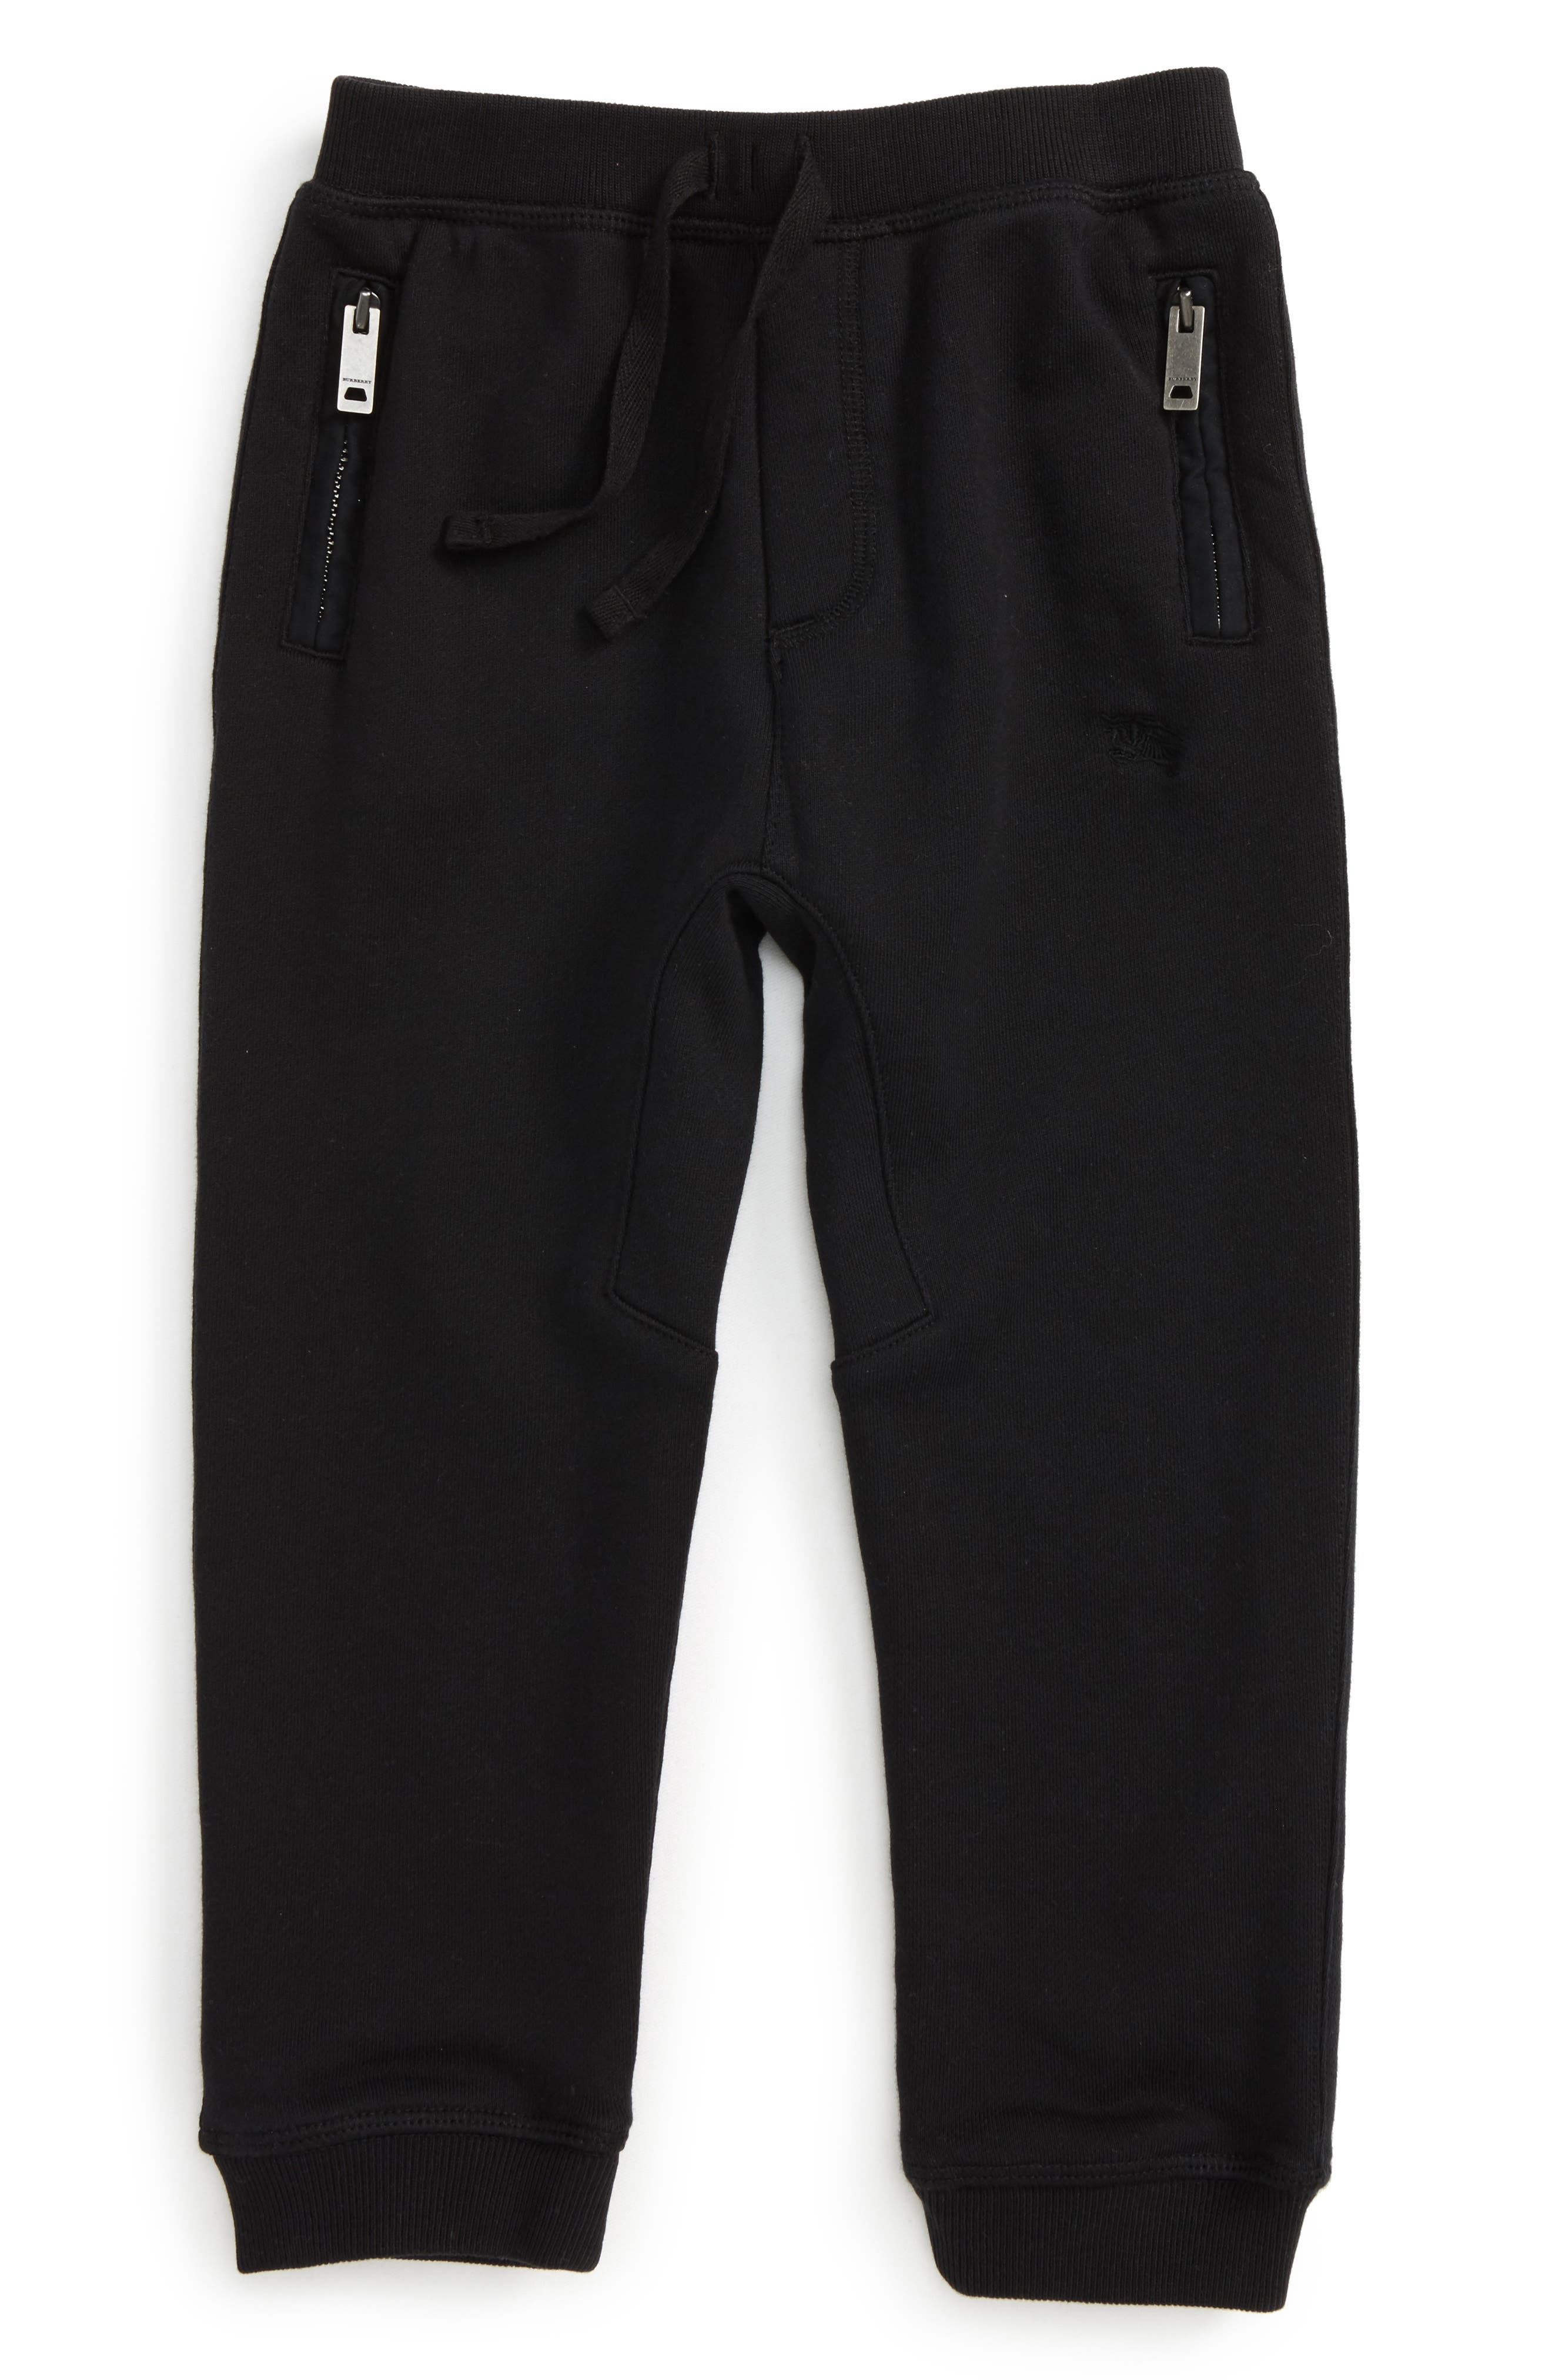 'Mini Phill' Sweatpants,                         Main,                         color, Black